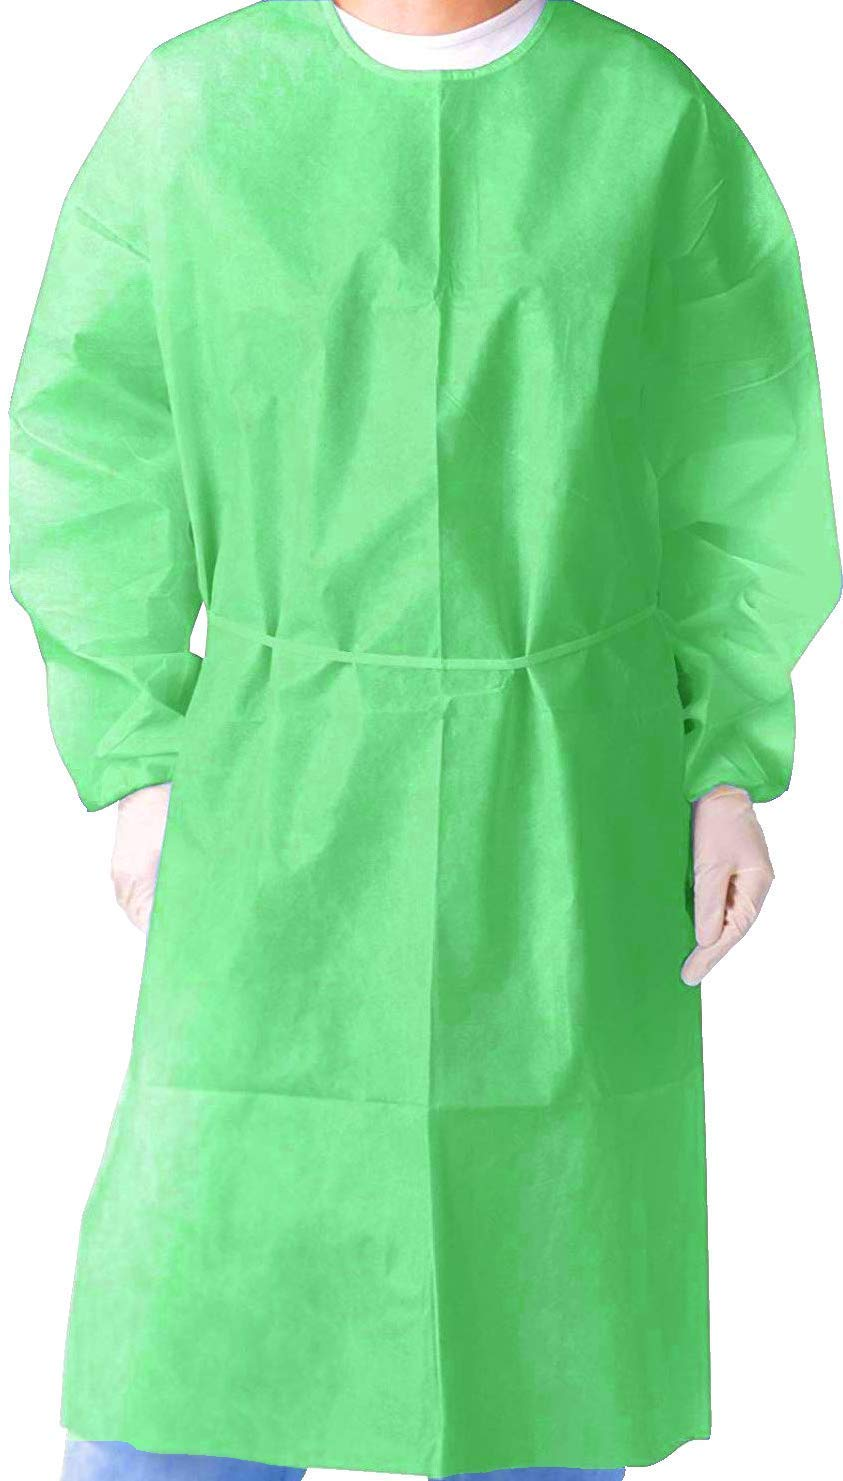 Isolation Gown with Elastic Cuff -Disposable Non-Woven, Splash Resistant, one size fits all (Green- Case/50 pcs)